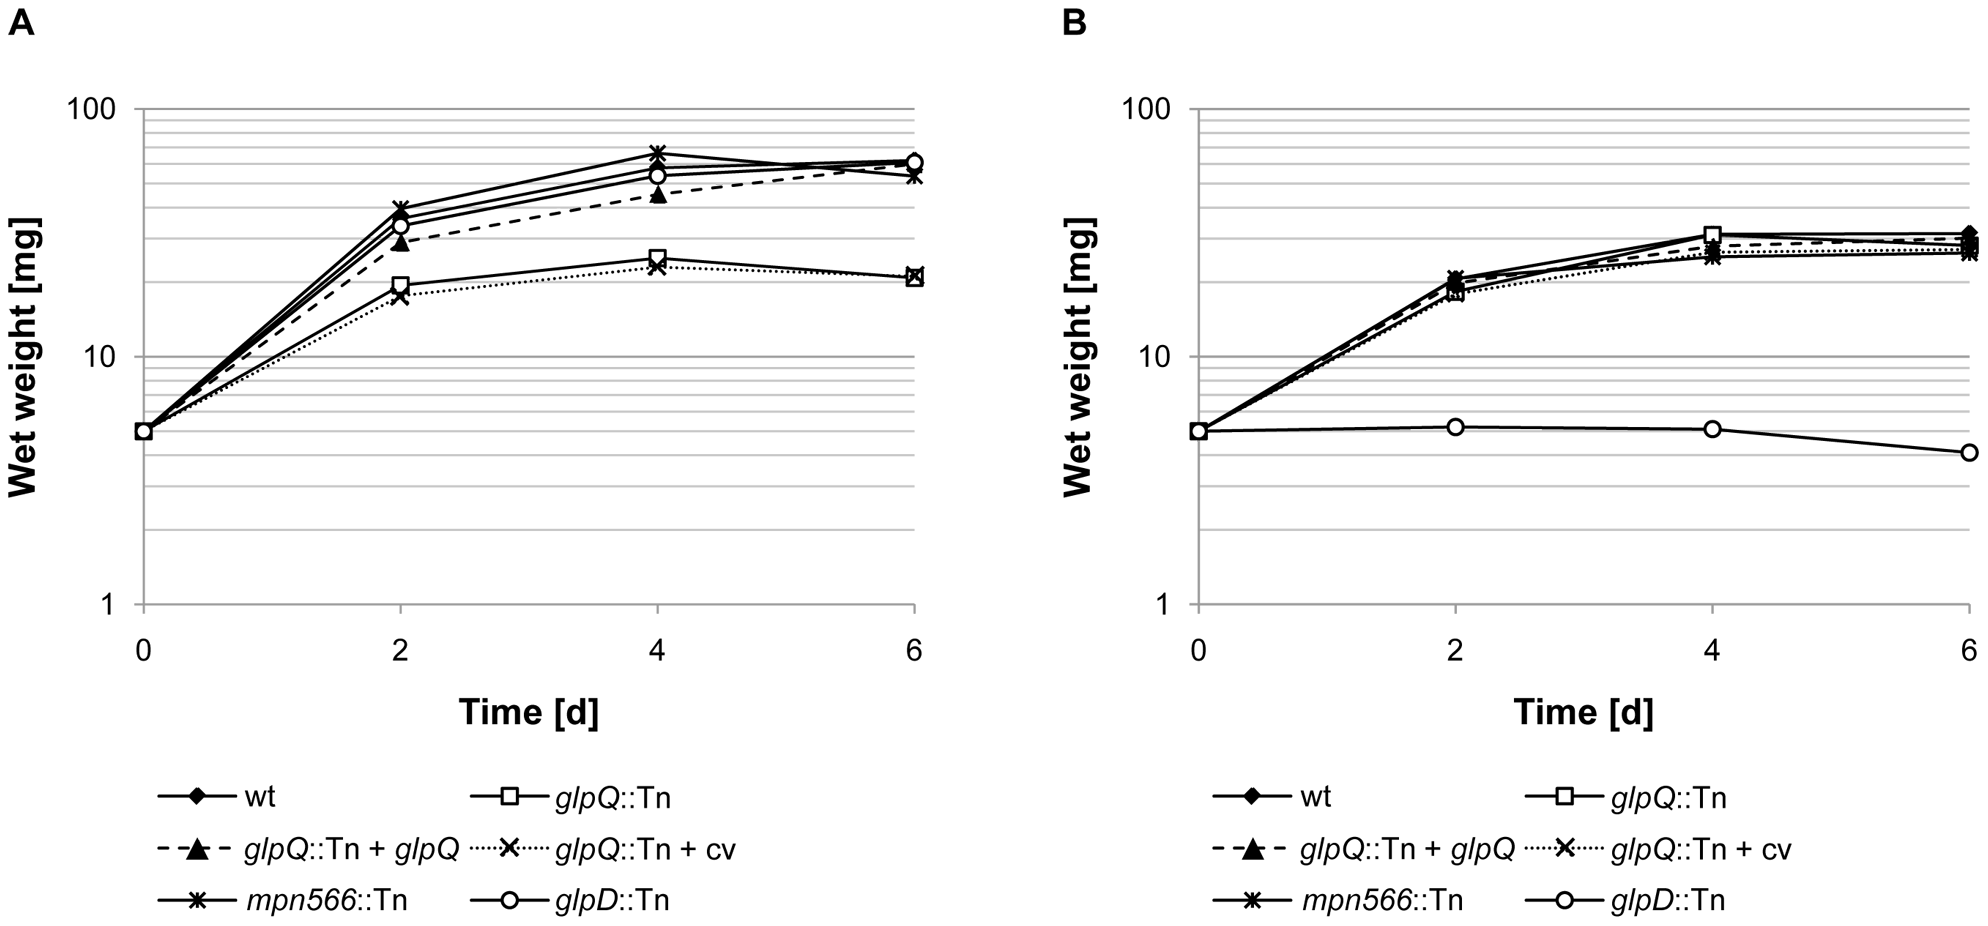 Growth of <i>M. pneumoniae</i> in modified Hayflick medium containing different carbon sources.